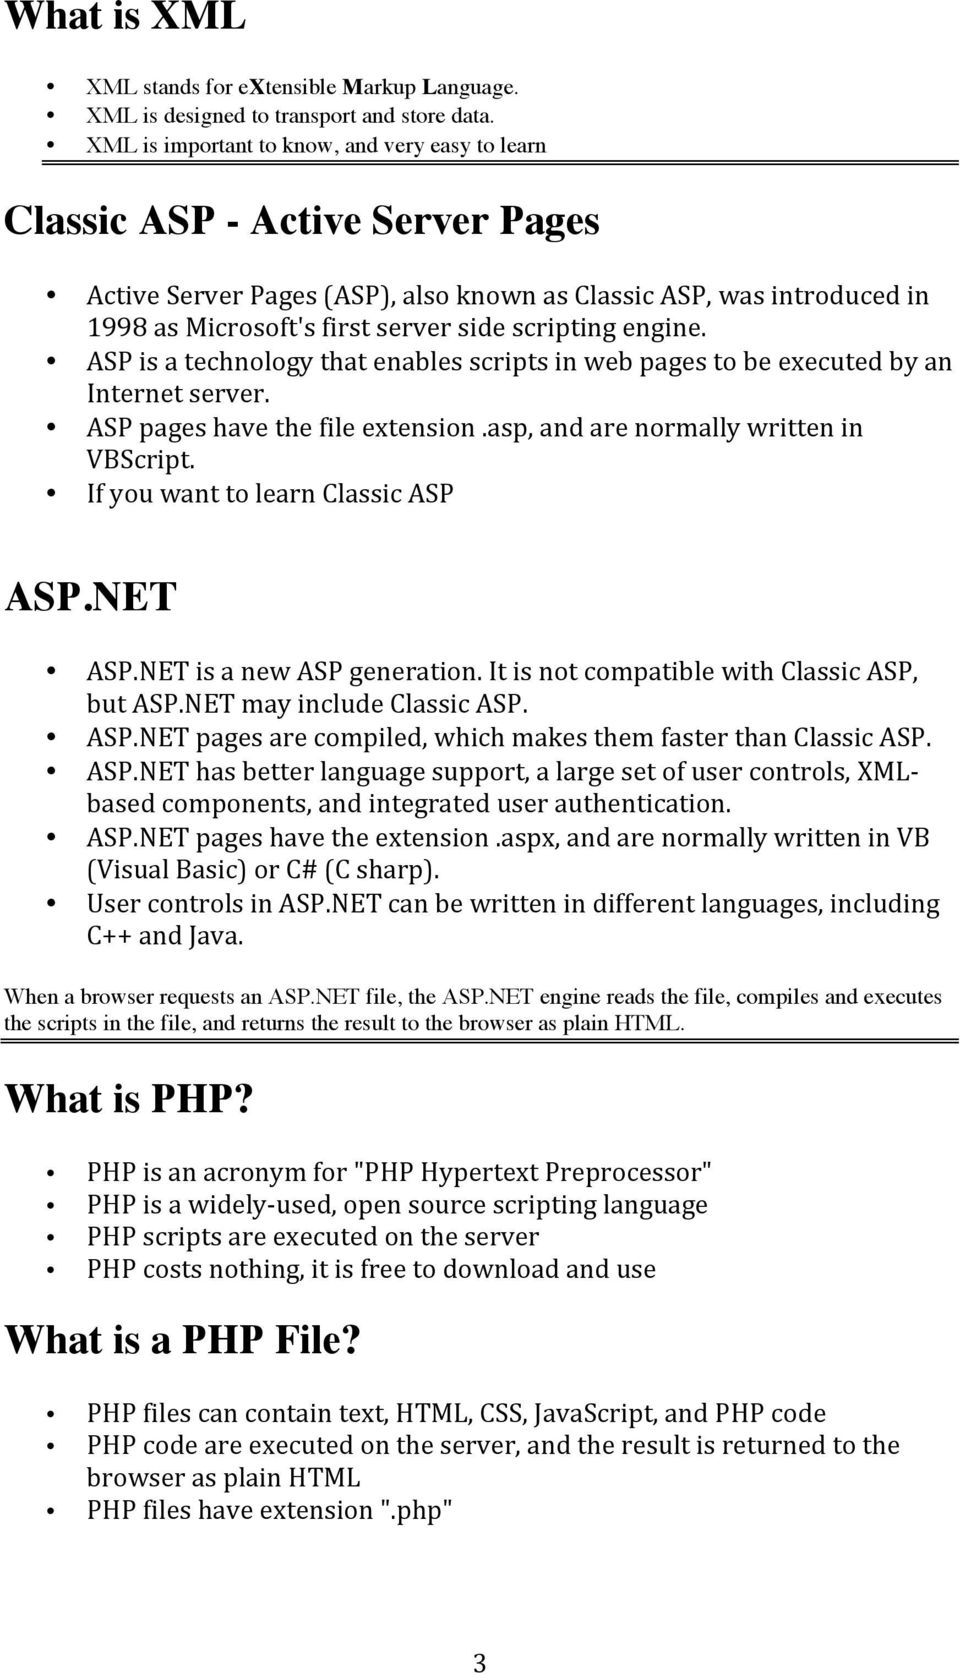 scripting engine. ASP is a technology that enables scripts in web pages to be executed by an Internet server. ASP pages have the file extension.asp, and are normally written in VBScript.